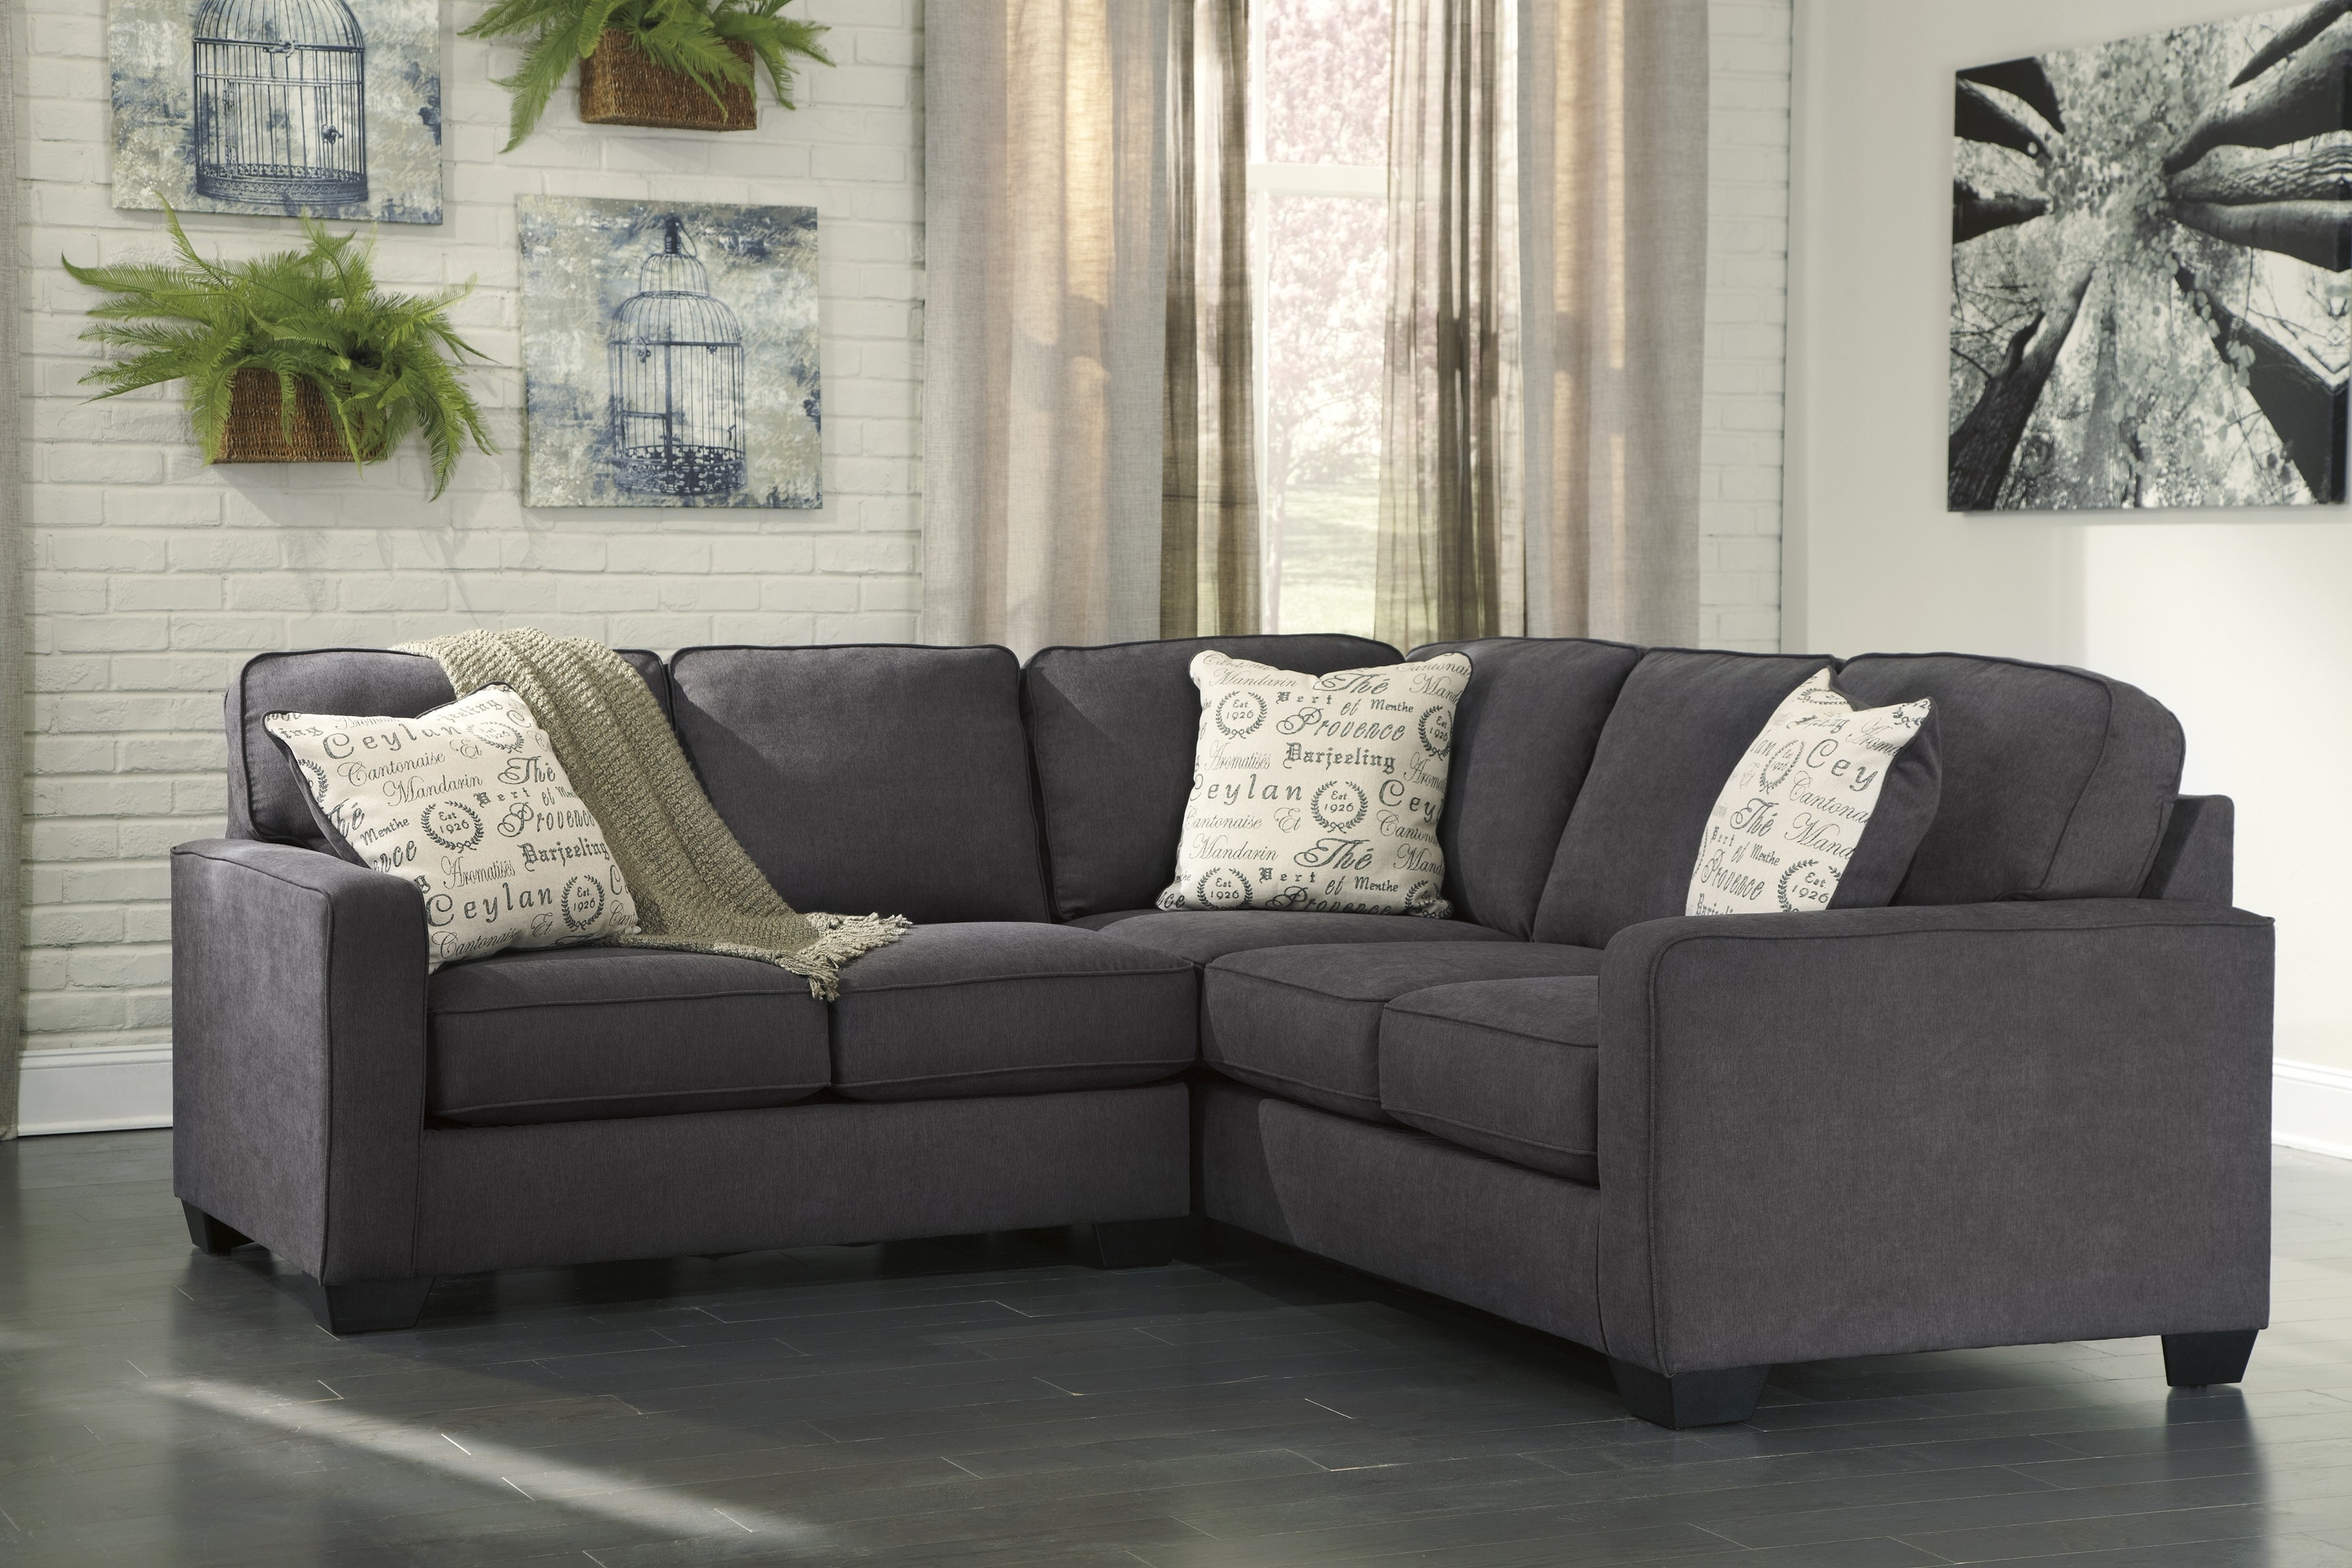 Sectional Sofas That Come In Pieces With Regard To 2018 Alenya Charcoal 2 Piece Sectional Sofa For $ (View 11 of 15)